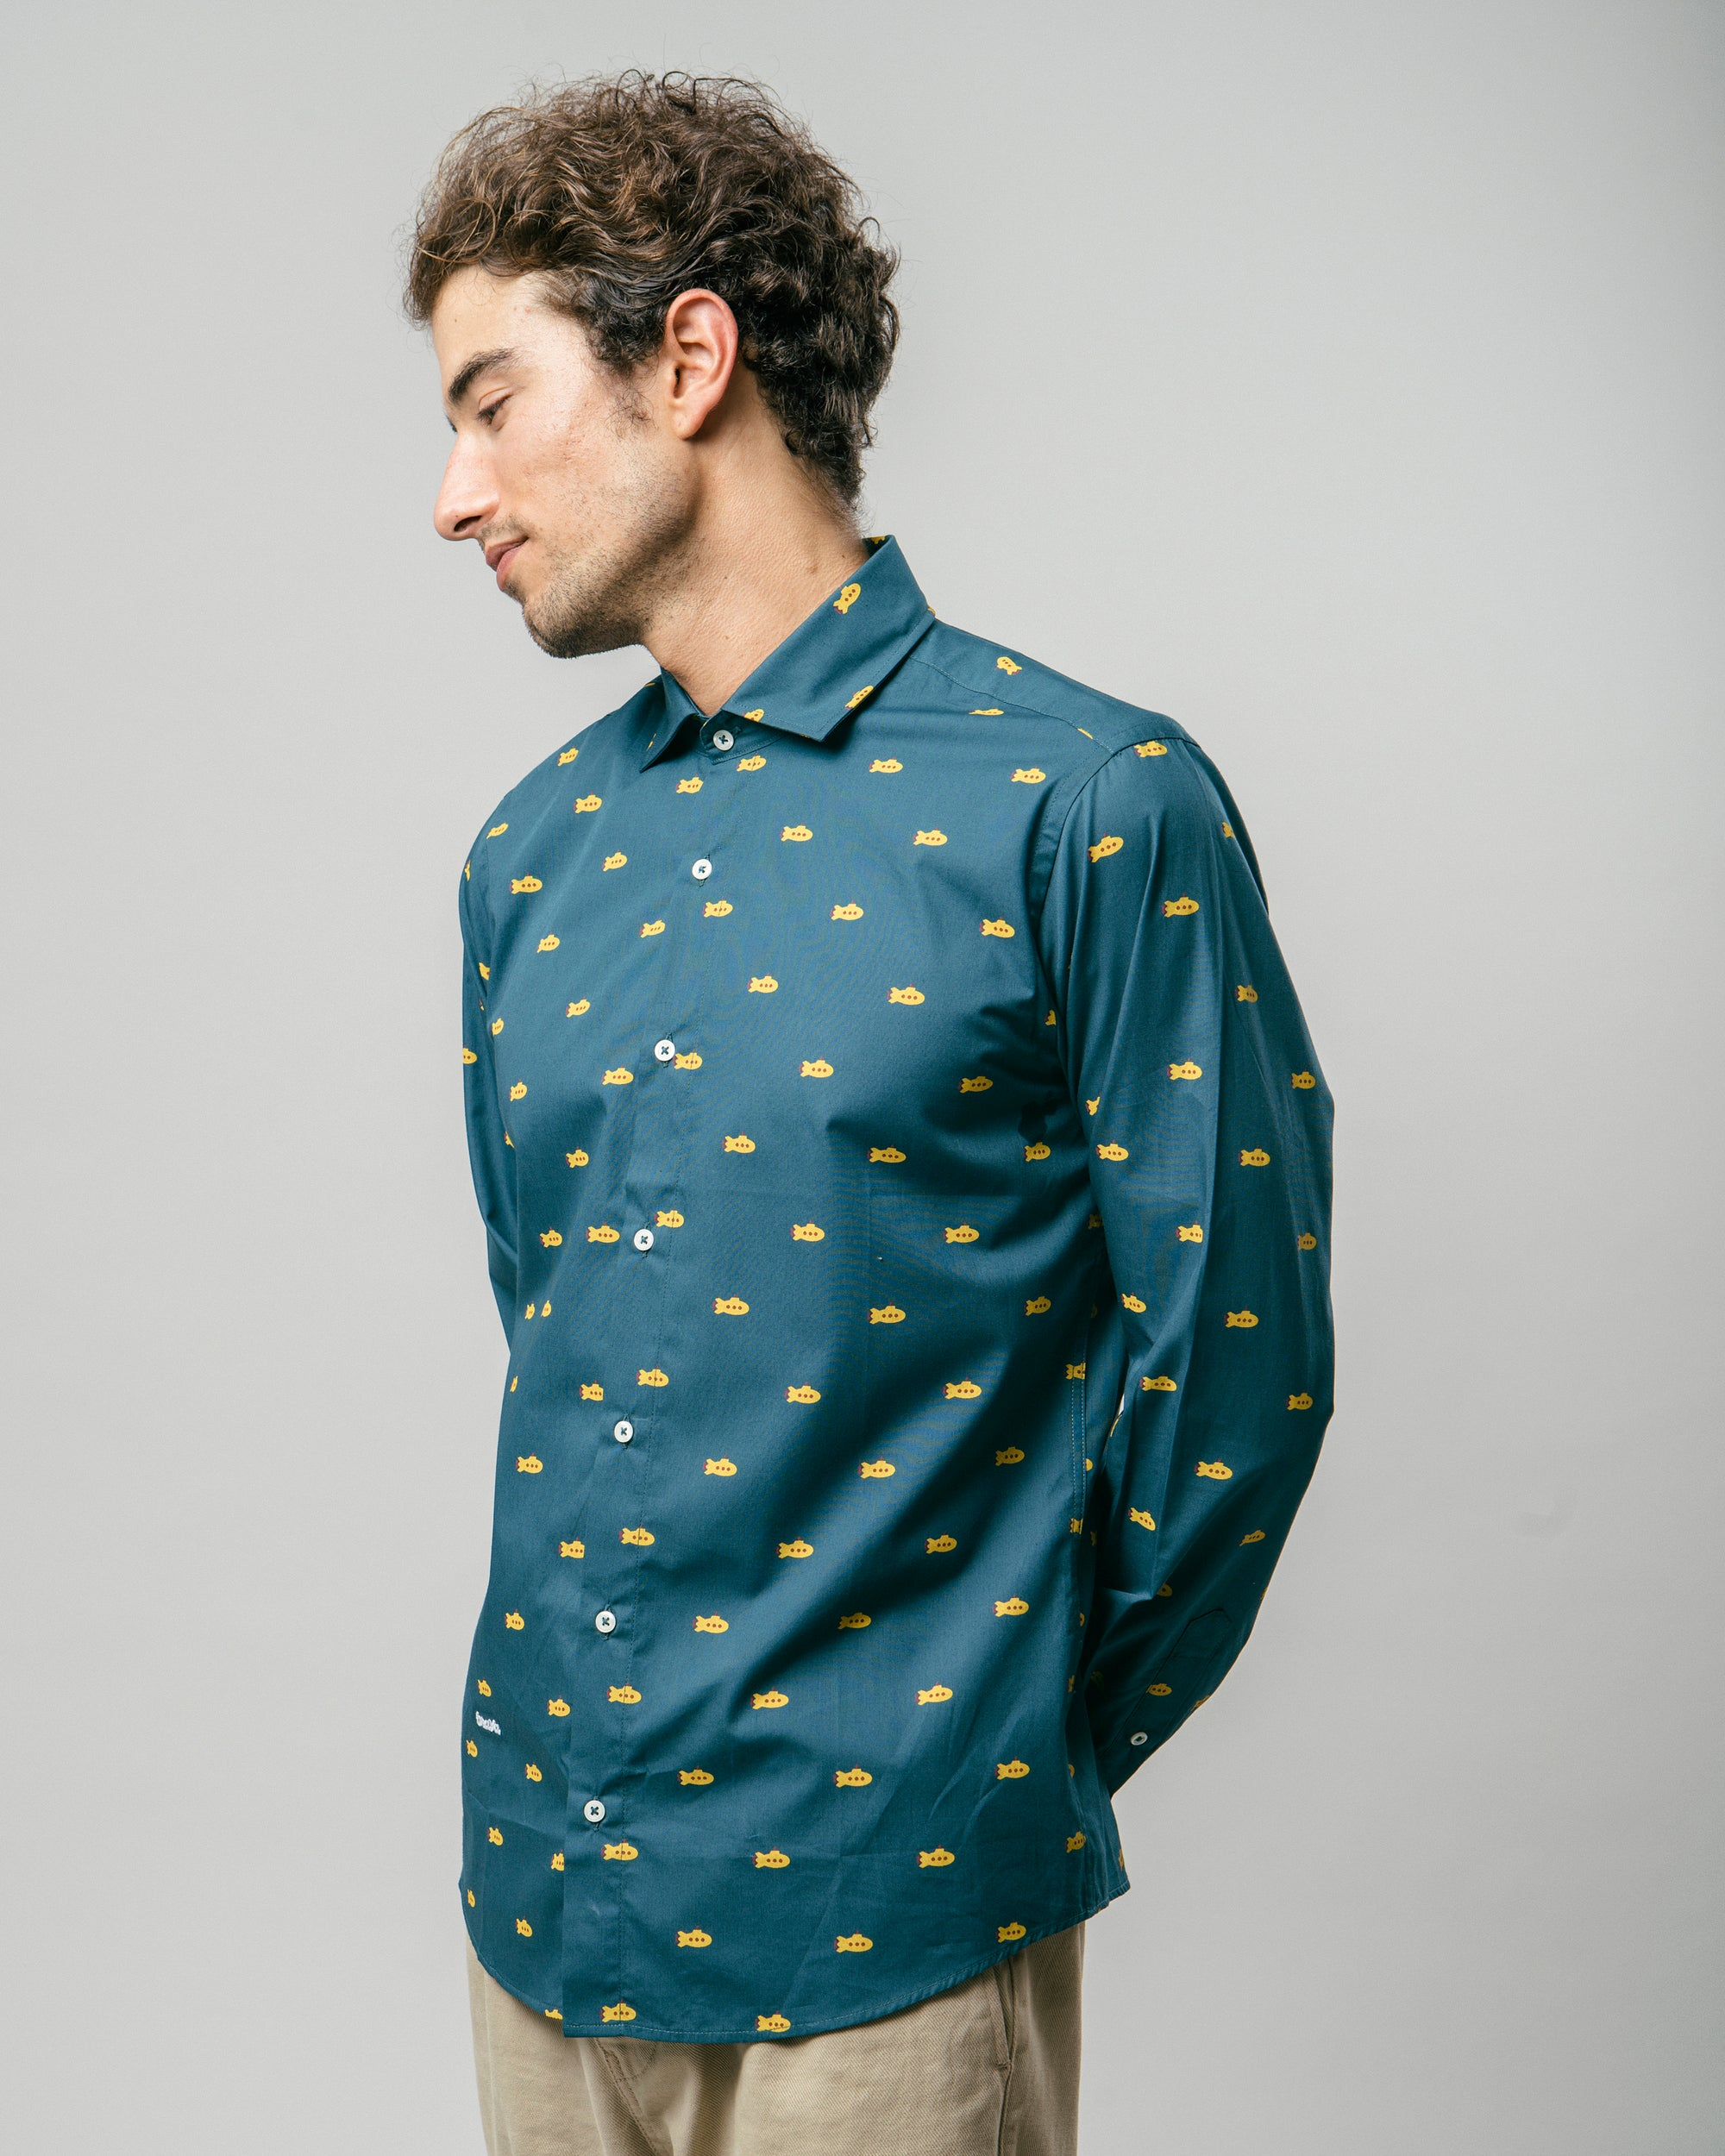 Yellow Submarine Printed Shirt